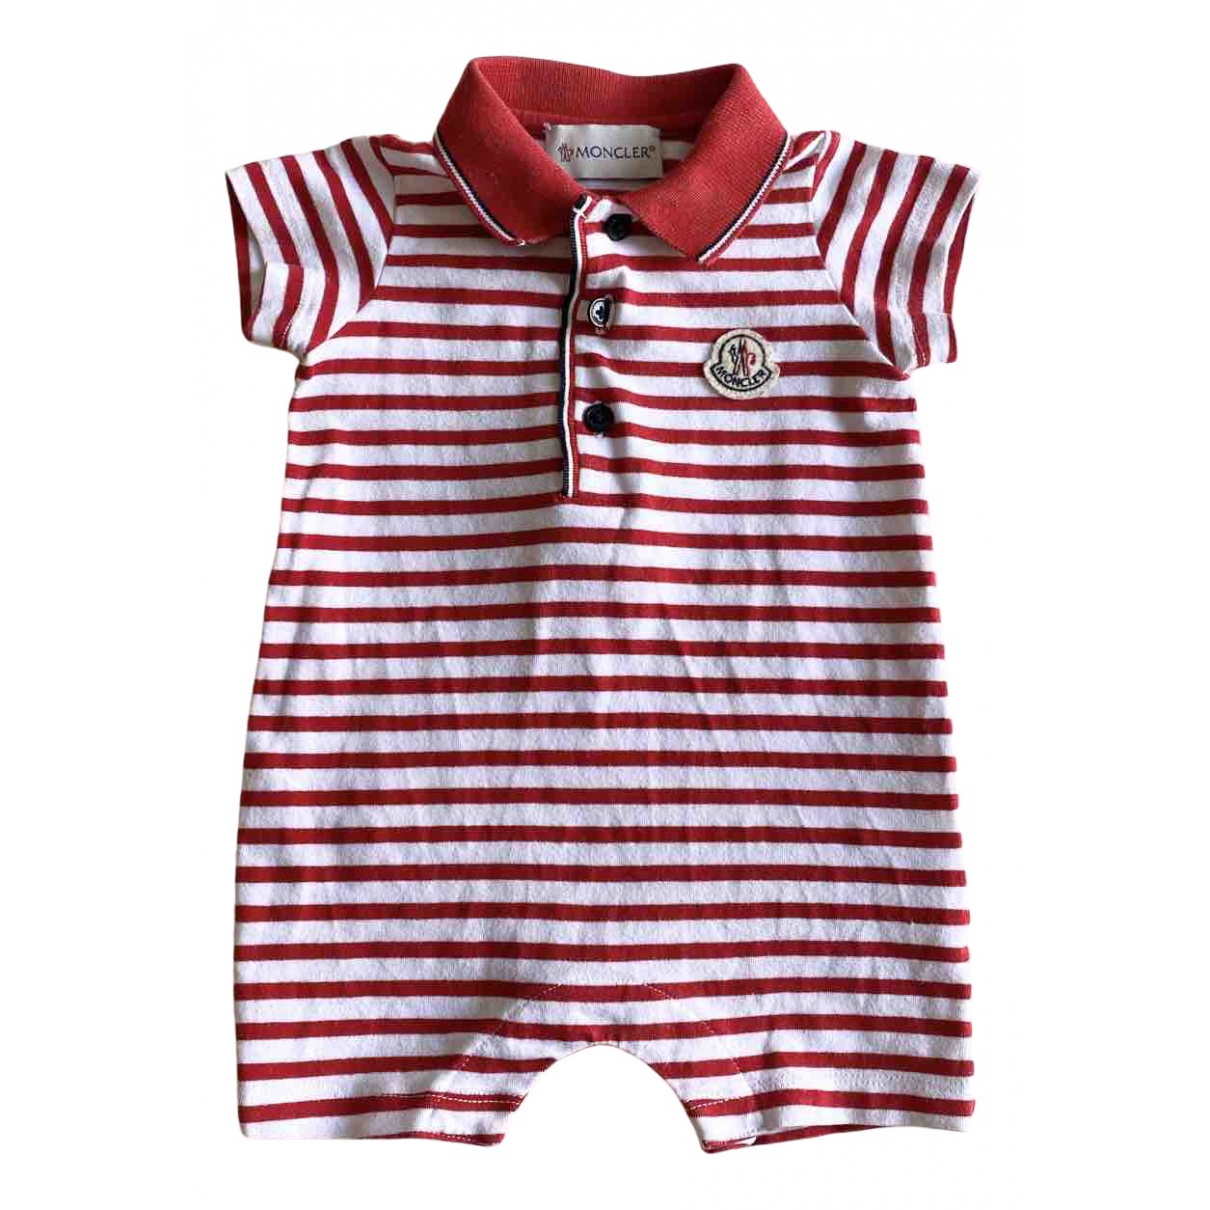 Moncler N White Cotton Outfits for Kids 3 months - up to 60cm FR